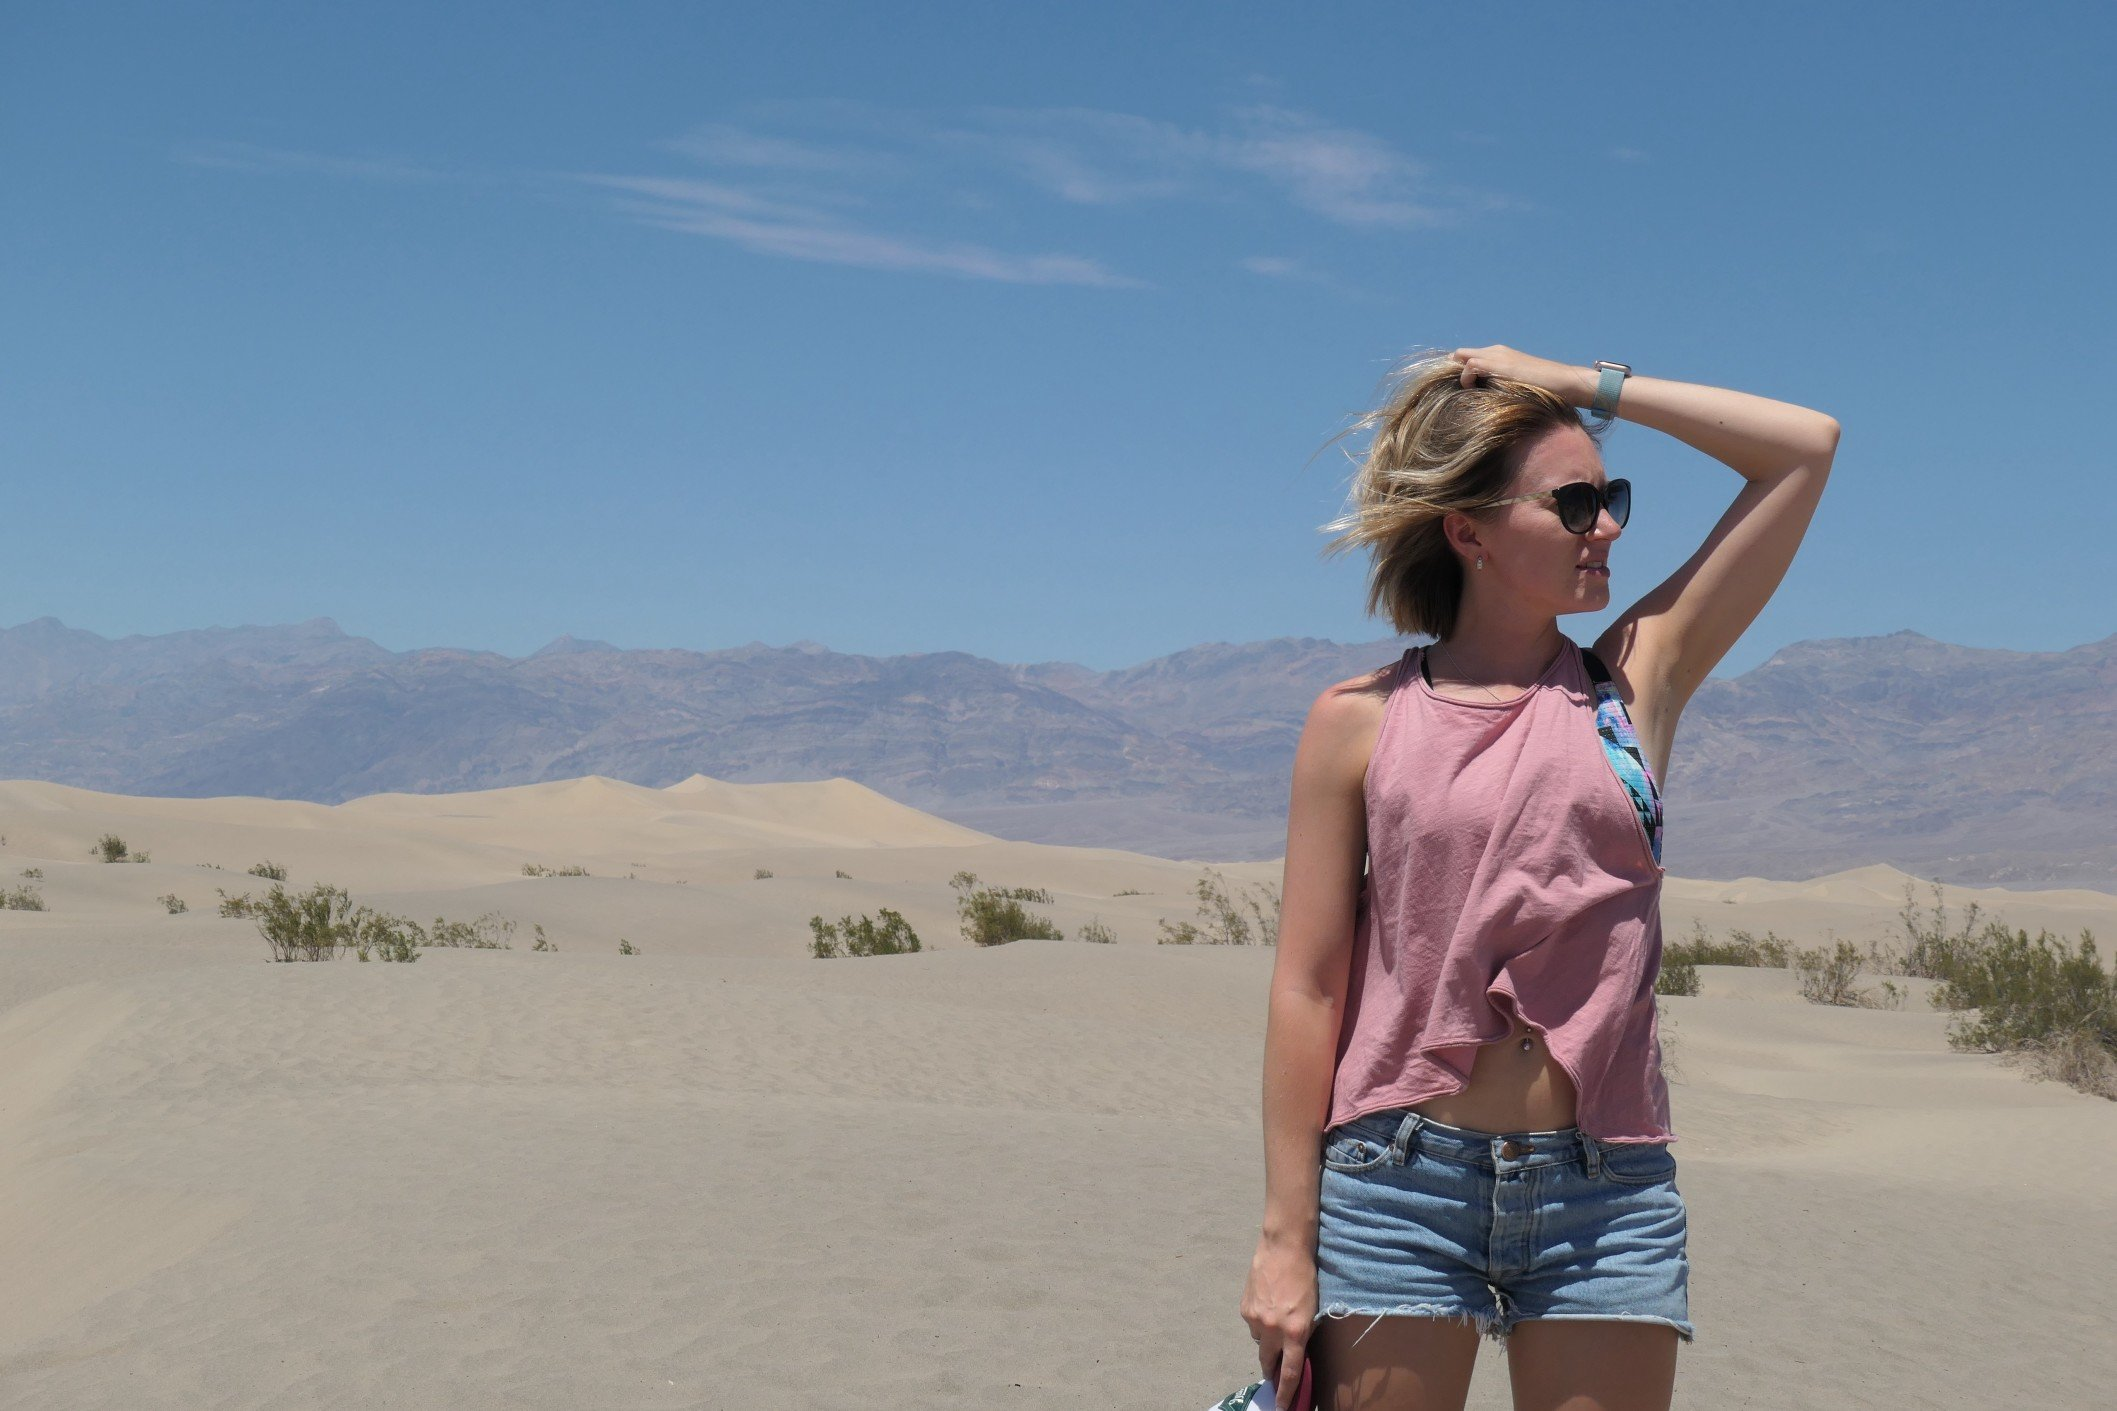 Is There Life in Death Valley?